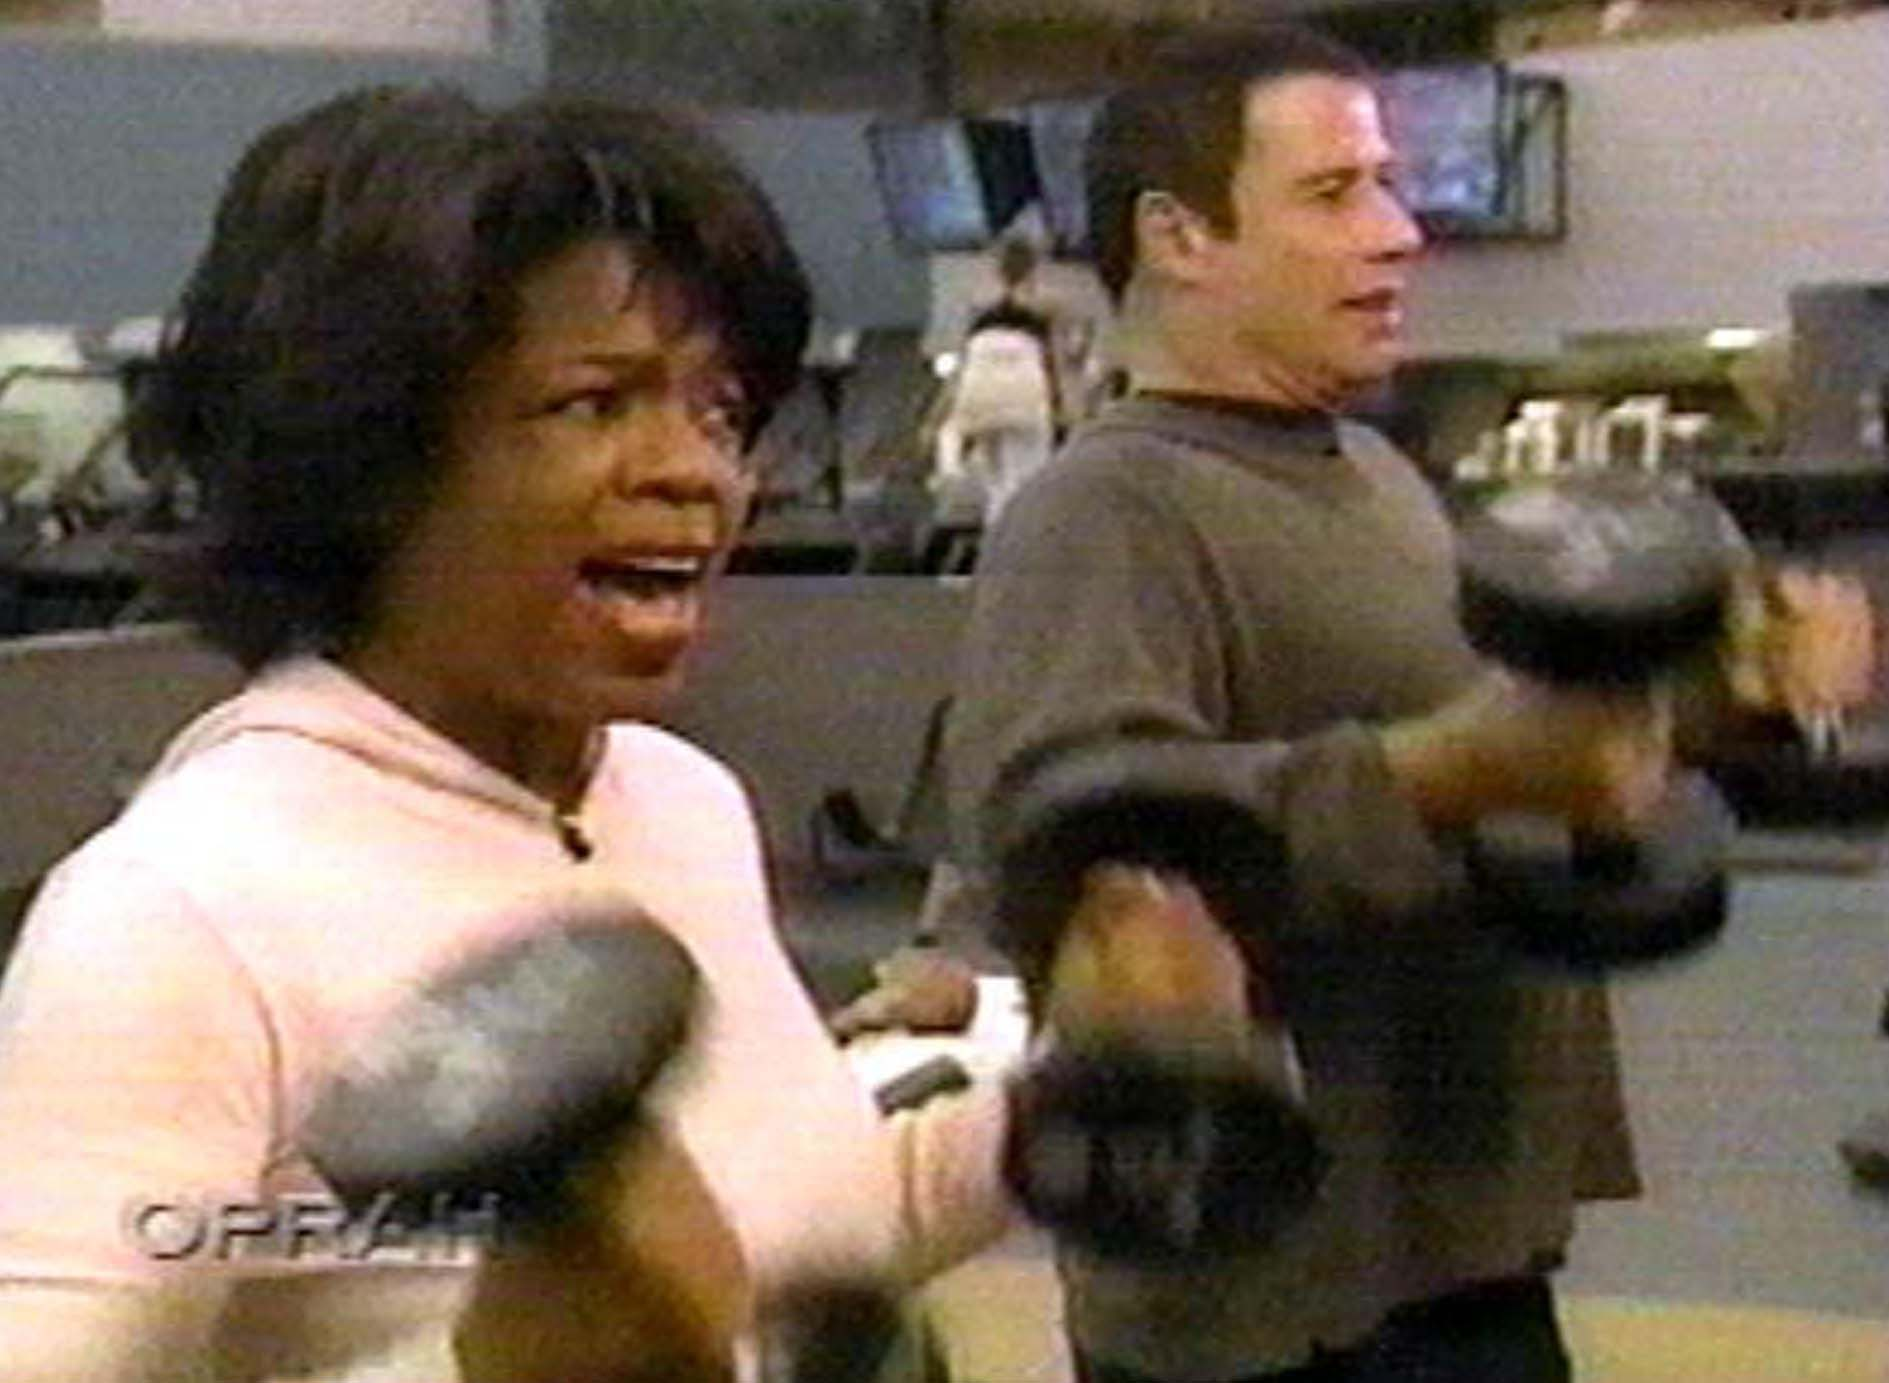 Oprah Winfrey with John Travolta in 1990